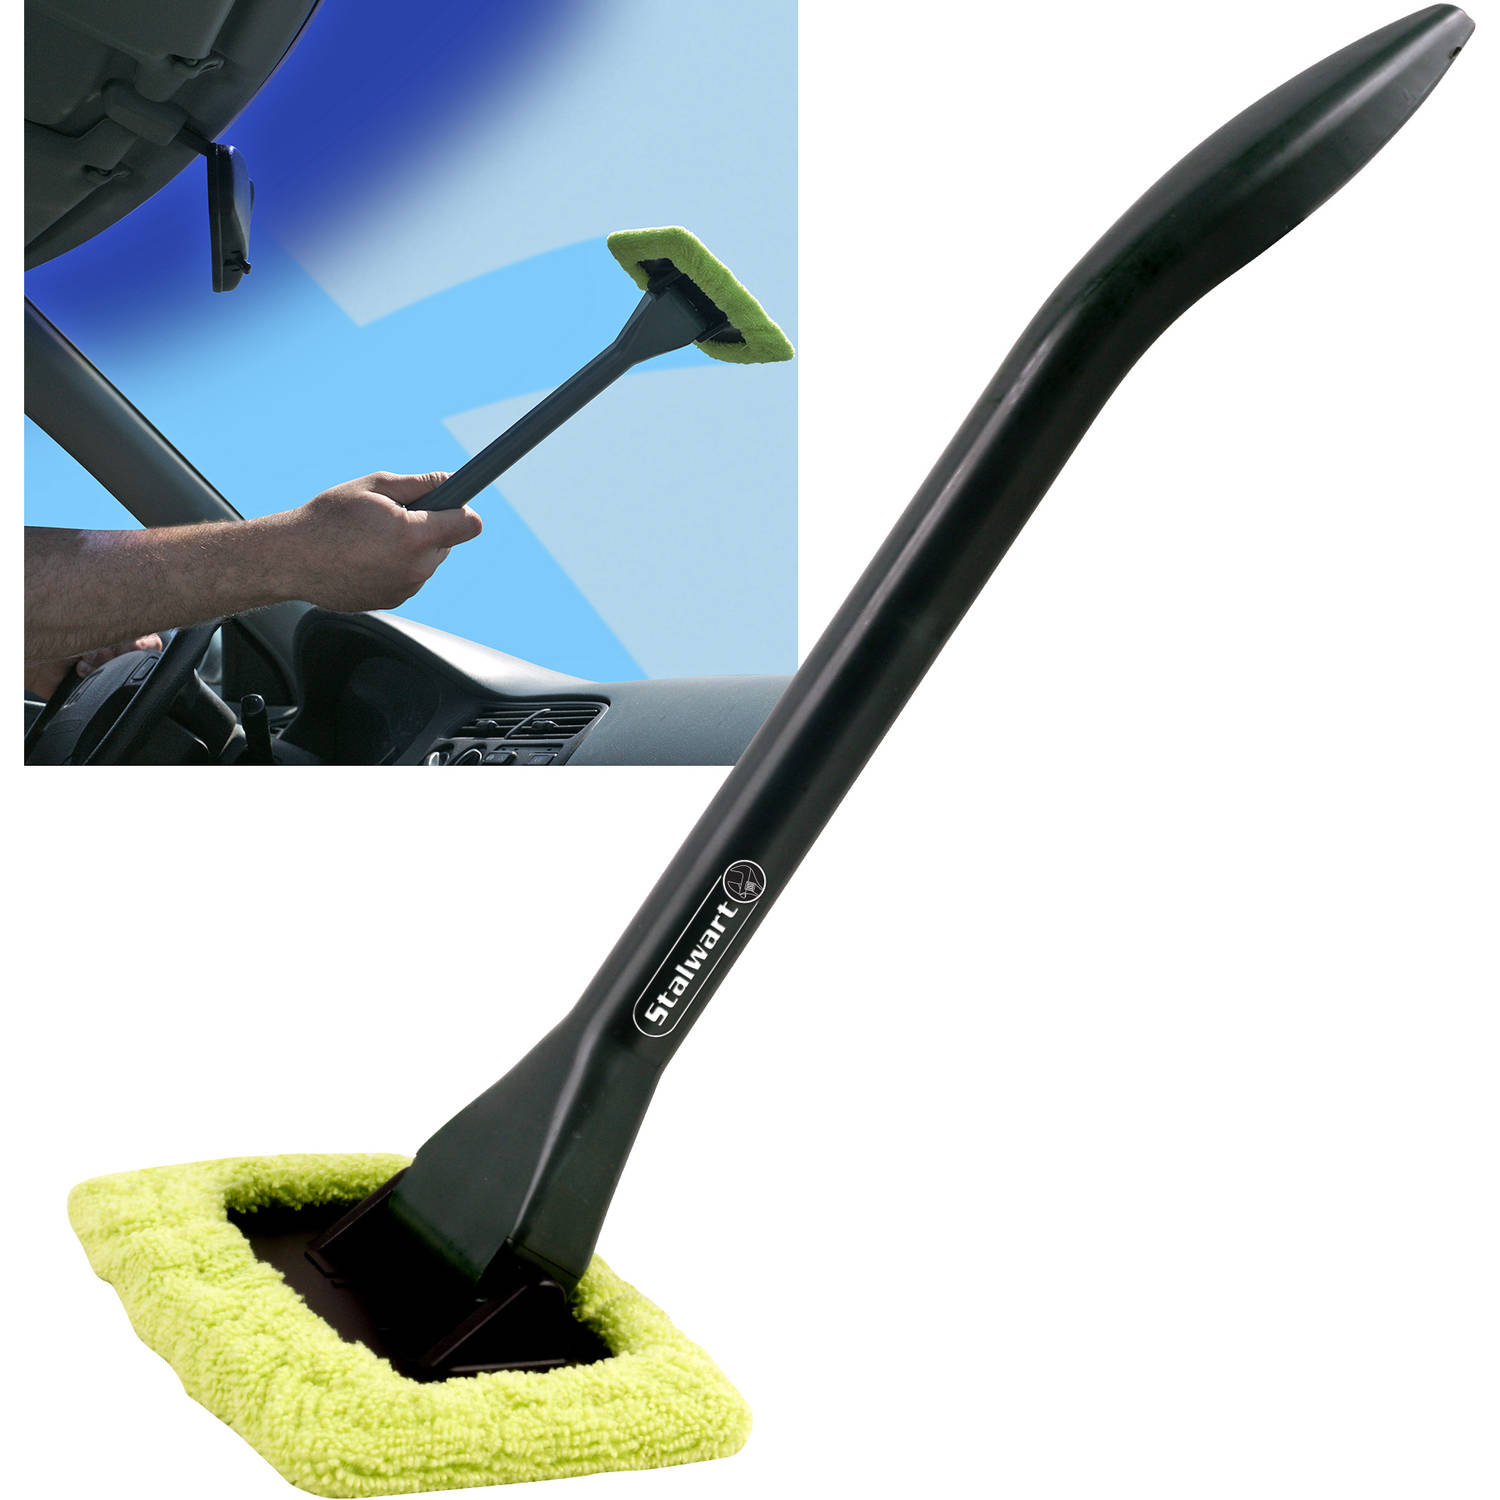 Windshield Cleaner with Microfiber Cloth, Handle and Pivoting Head- Glass Washer Cleaning Tool for Windows By Stalwart (Green)